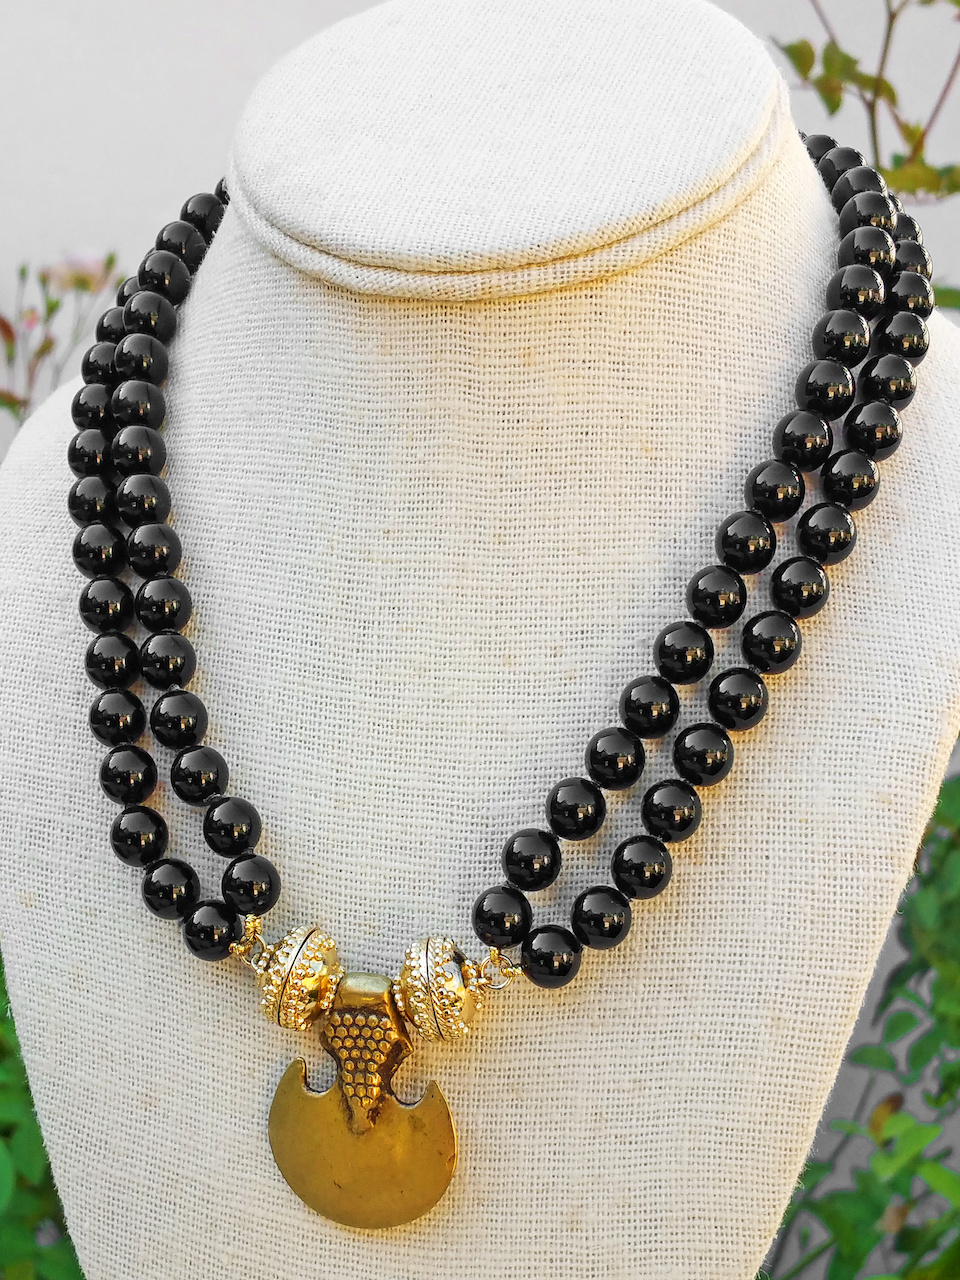 Clara Williams Company onyx necklace, $495, and the carved brass anchor, $325, at Estate Jewelers of Mountain Brook